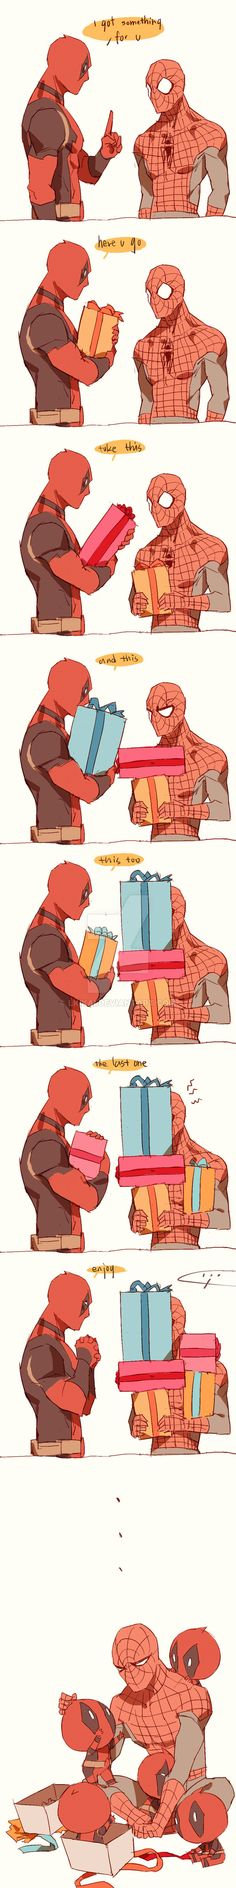 Spiderman x Deadpool Marvel 3, Marvel Funny, Marvel Memes, Funny Comics, Marvel Universe, Spideypool, Superfamily, Deadpool X Spiderman, Marvel Avengers